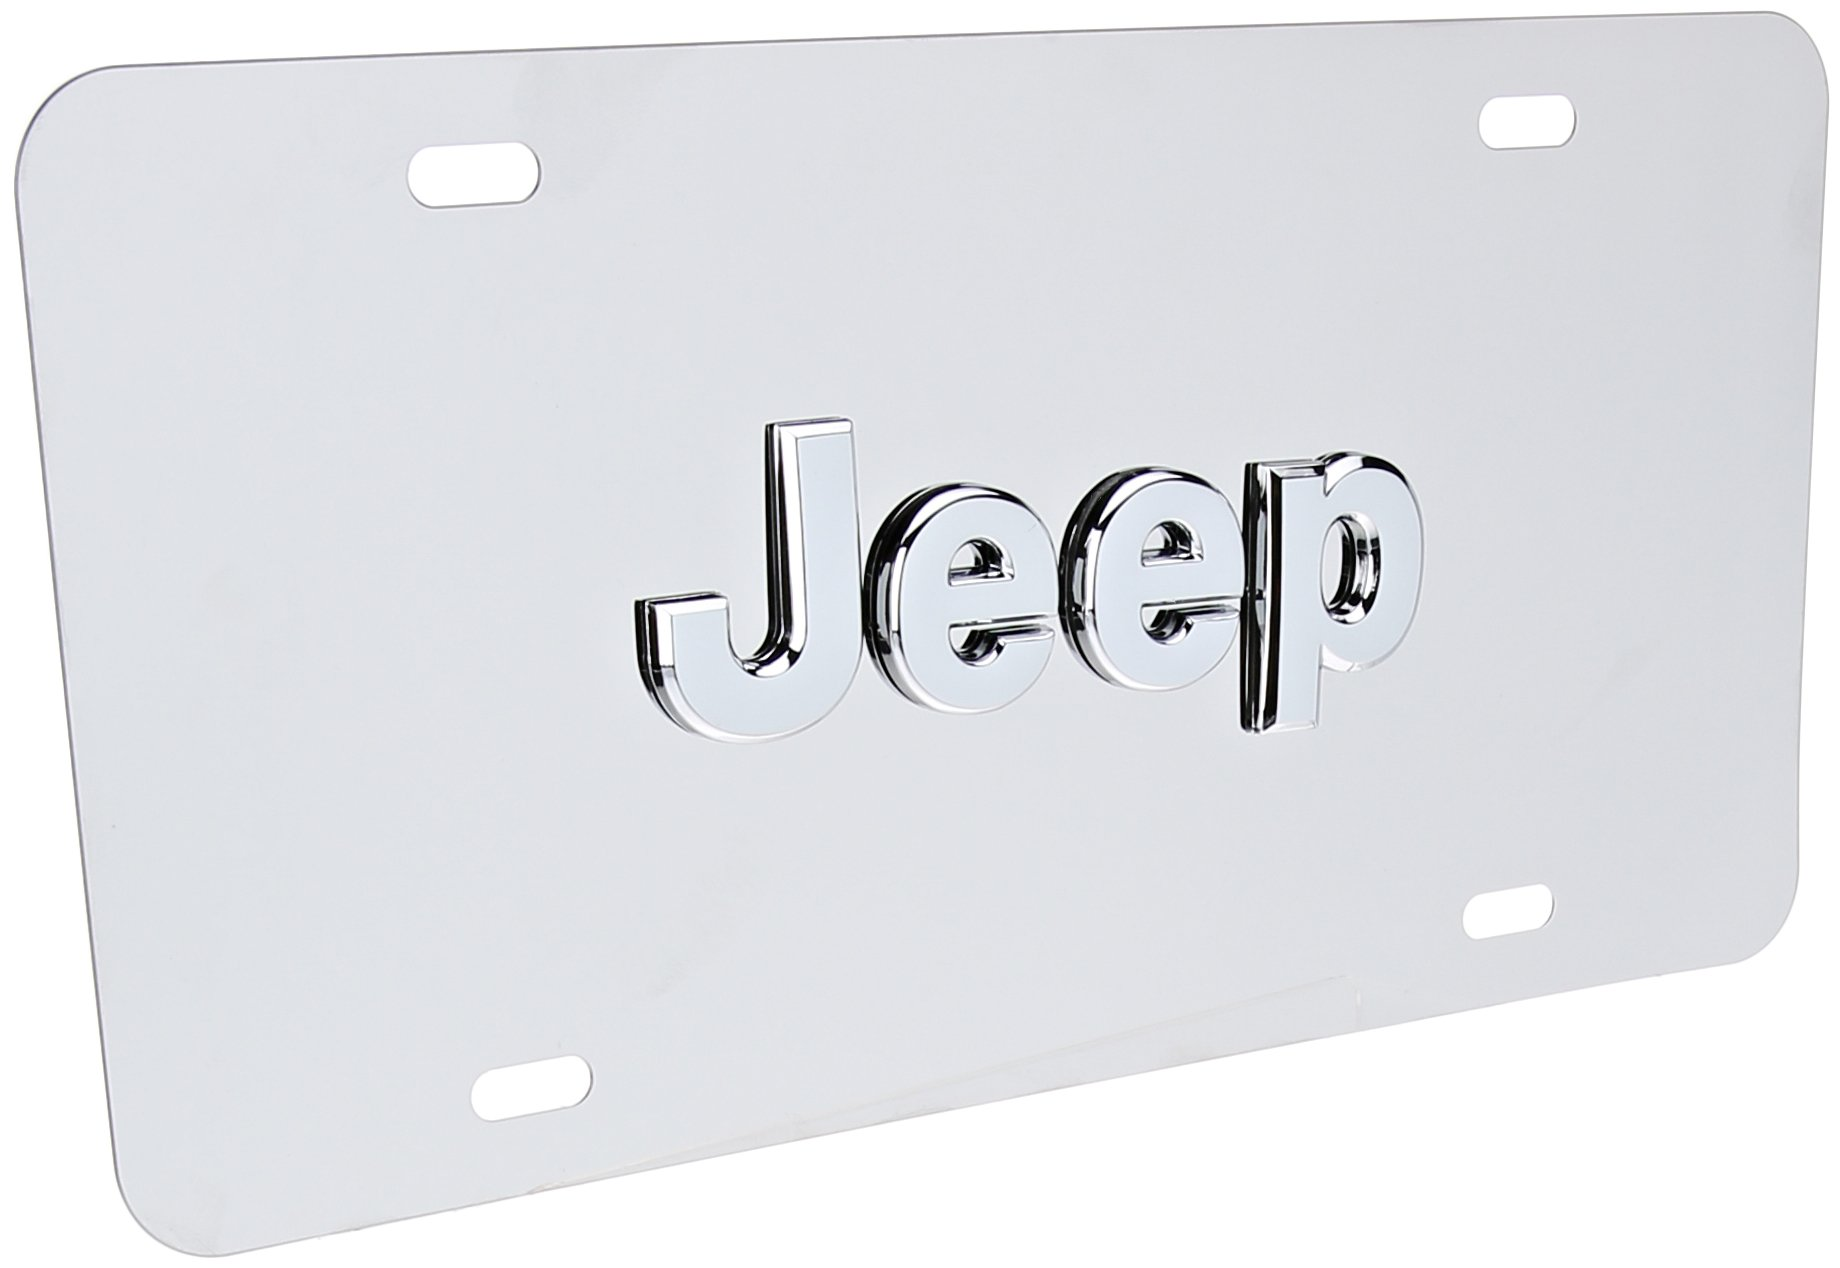 Pilot Automotive LP-130 Stainless Steel 3-D License Plate (ABS Plastic Decal, Officially Licensed Jeep) by Pilot Automotive (Image #1)